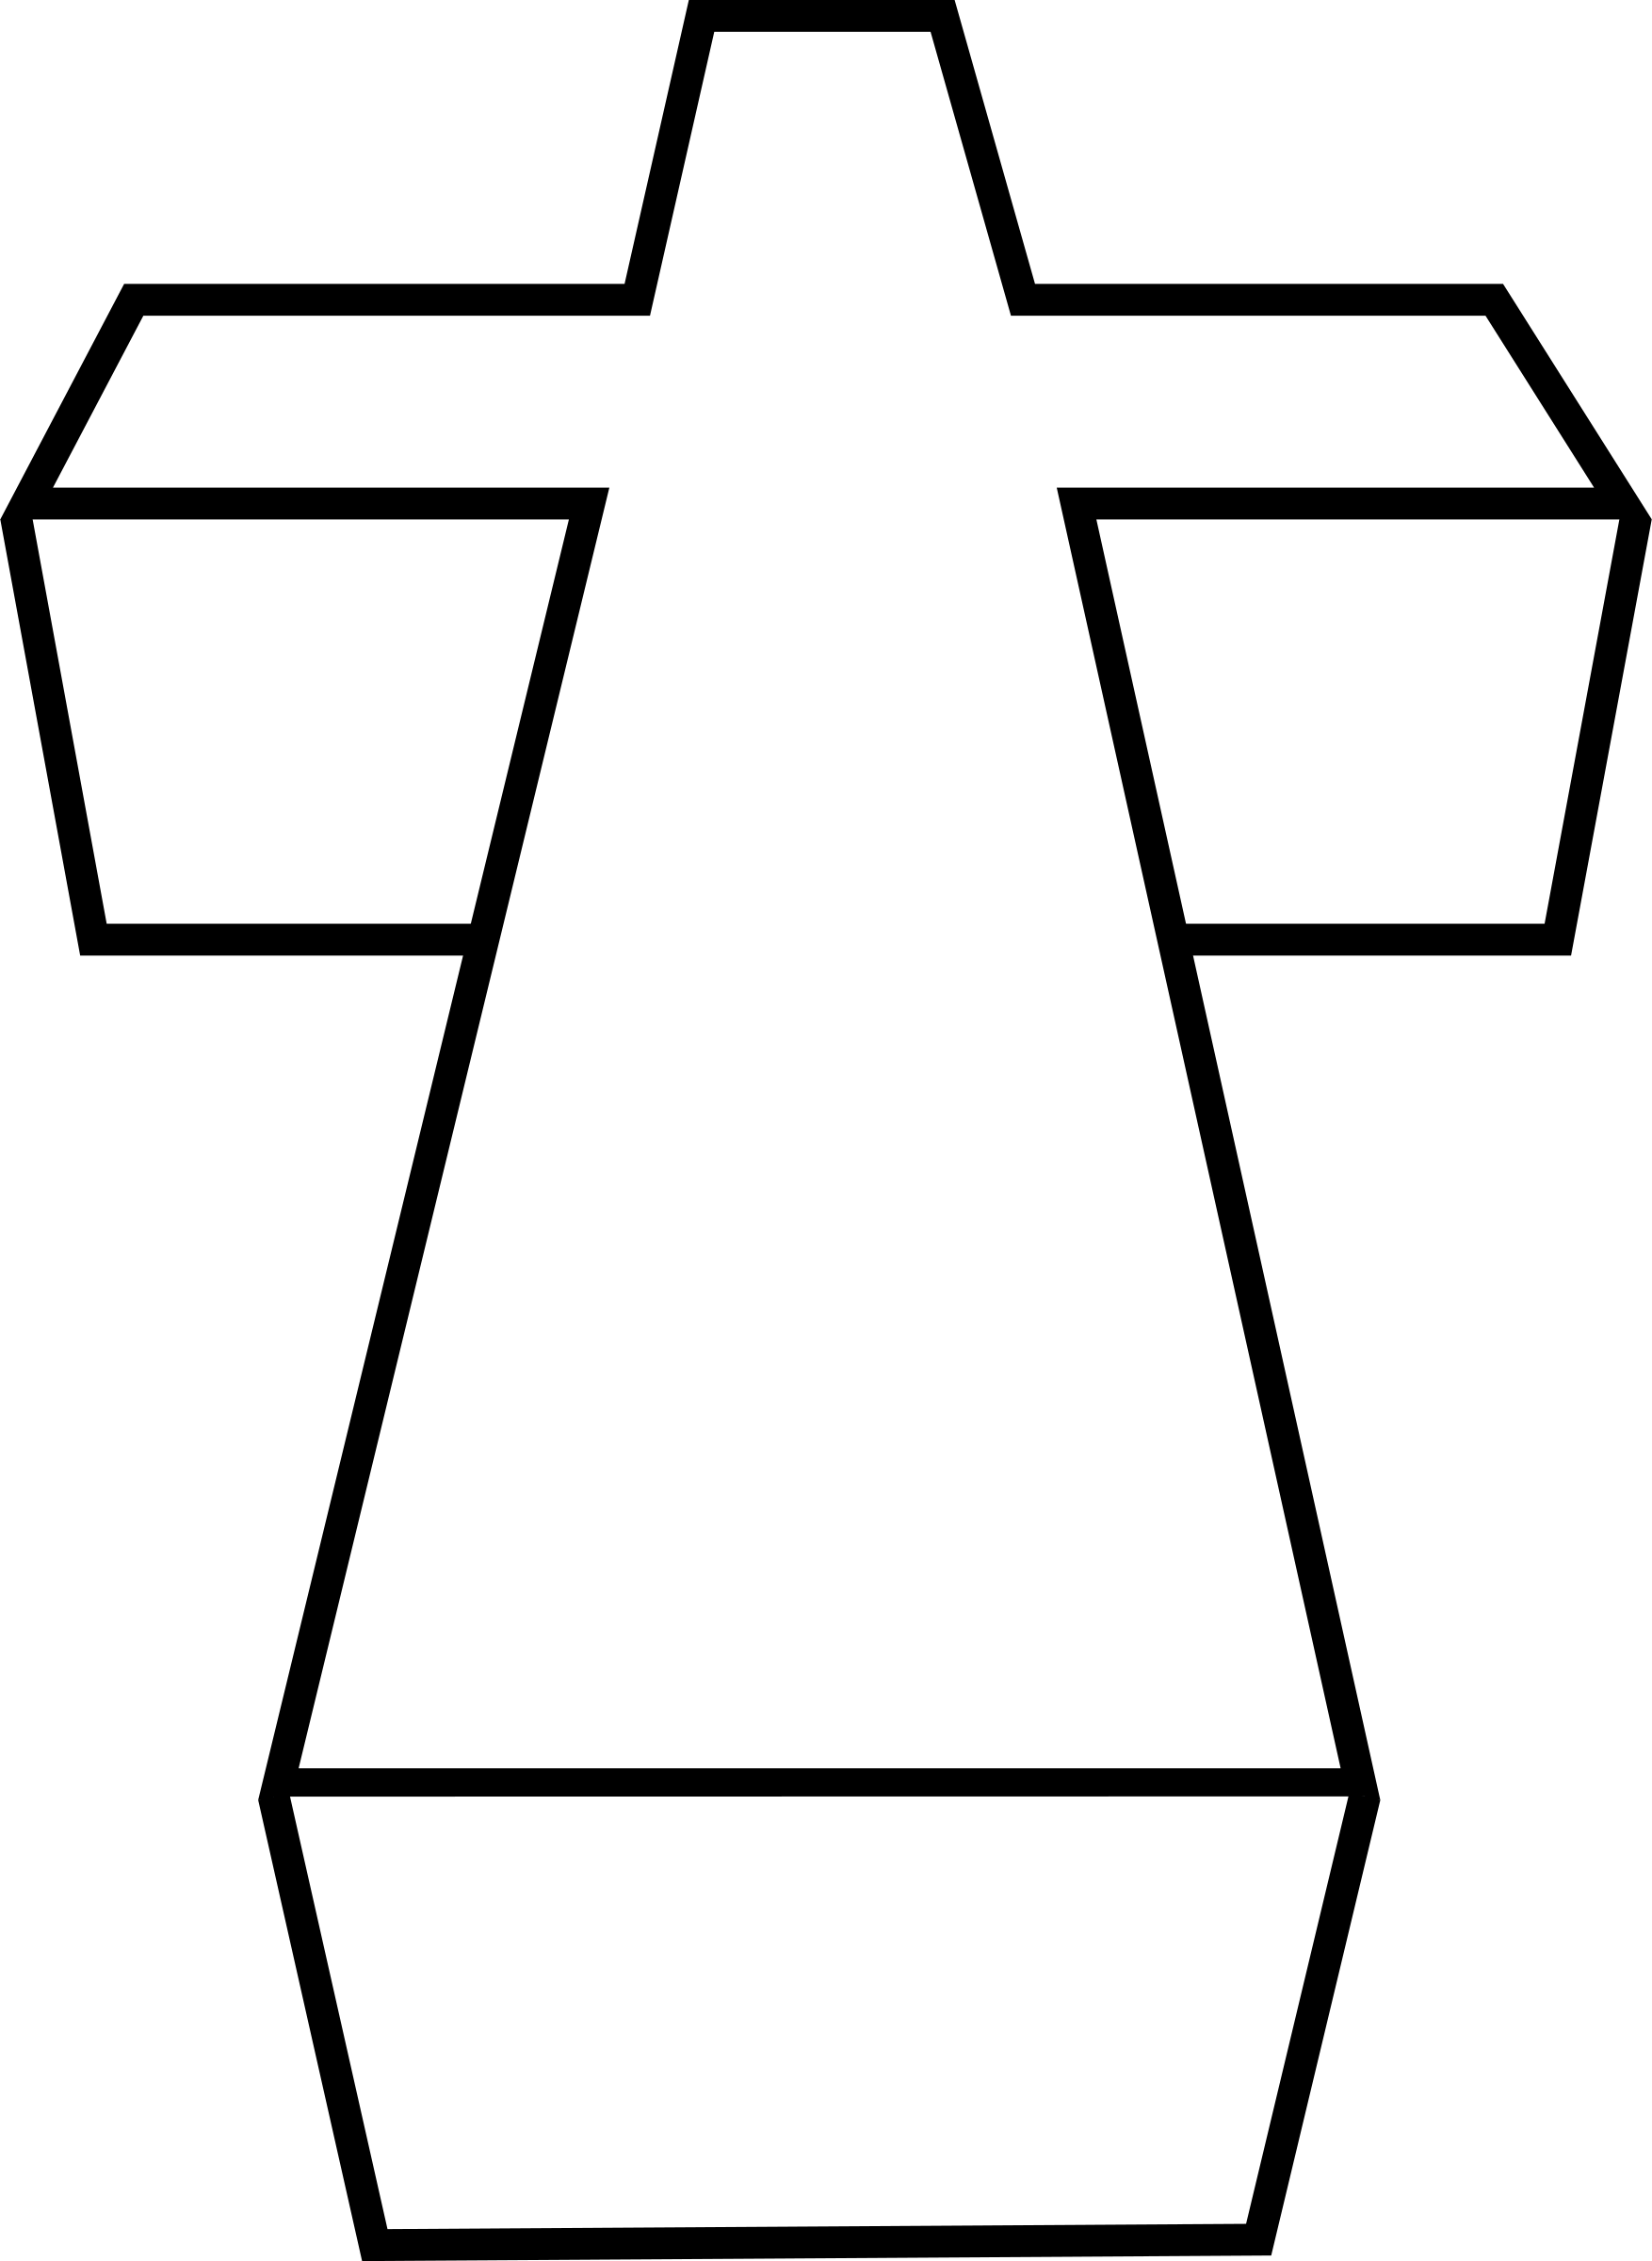 d encode to. Cross with shadow clipart